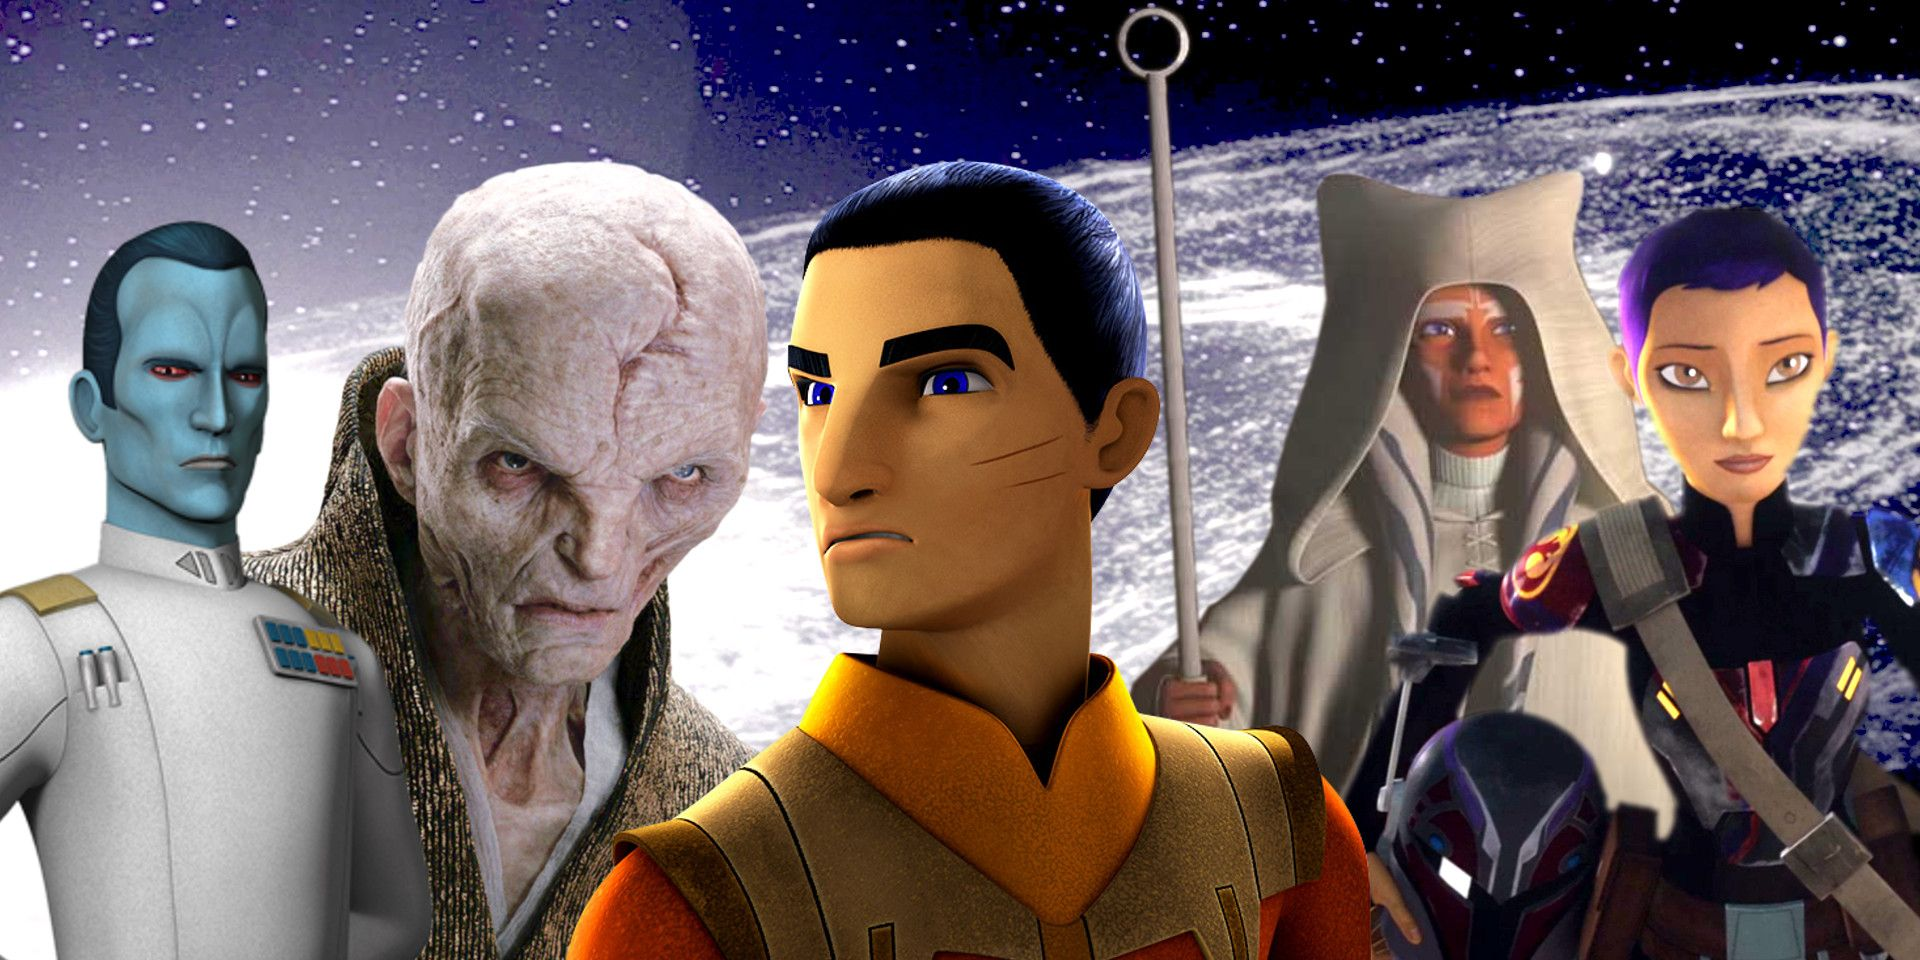 rebels sets up star wars future in the unknown regions